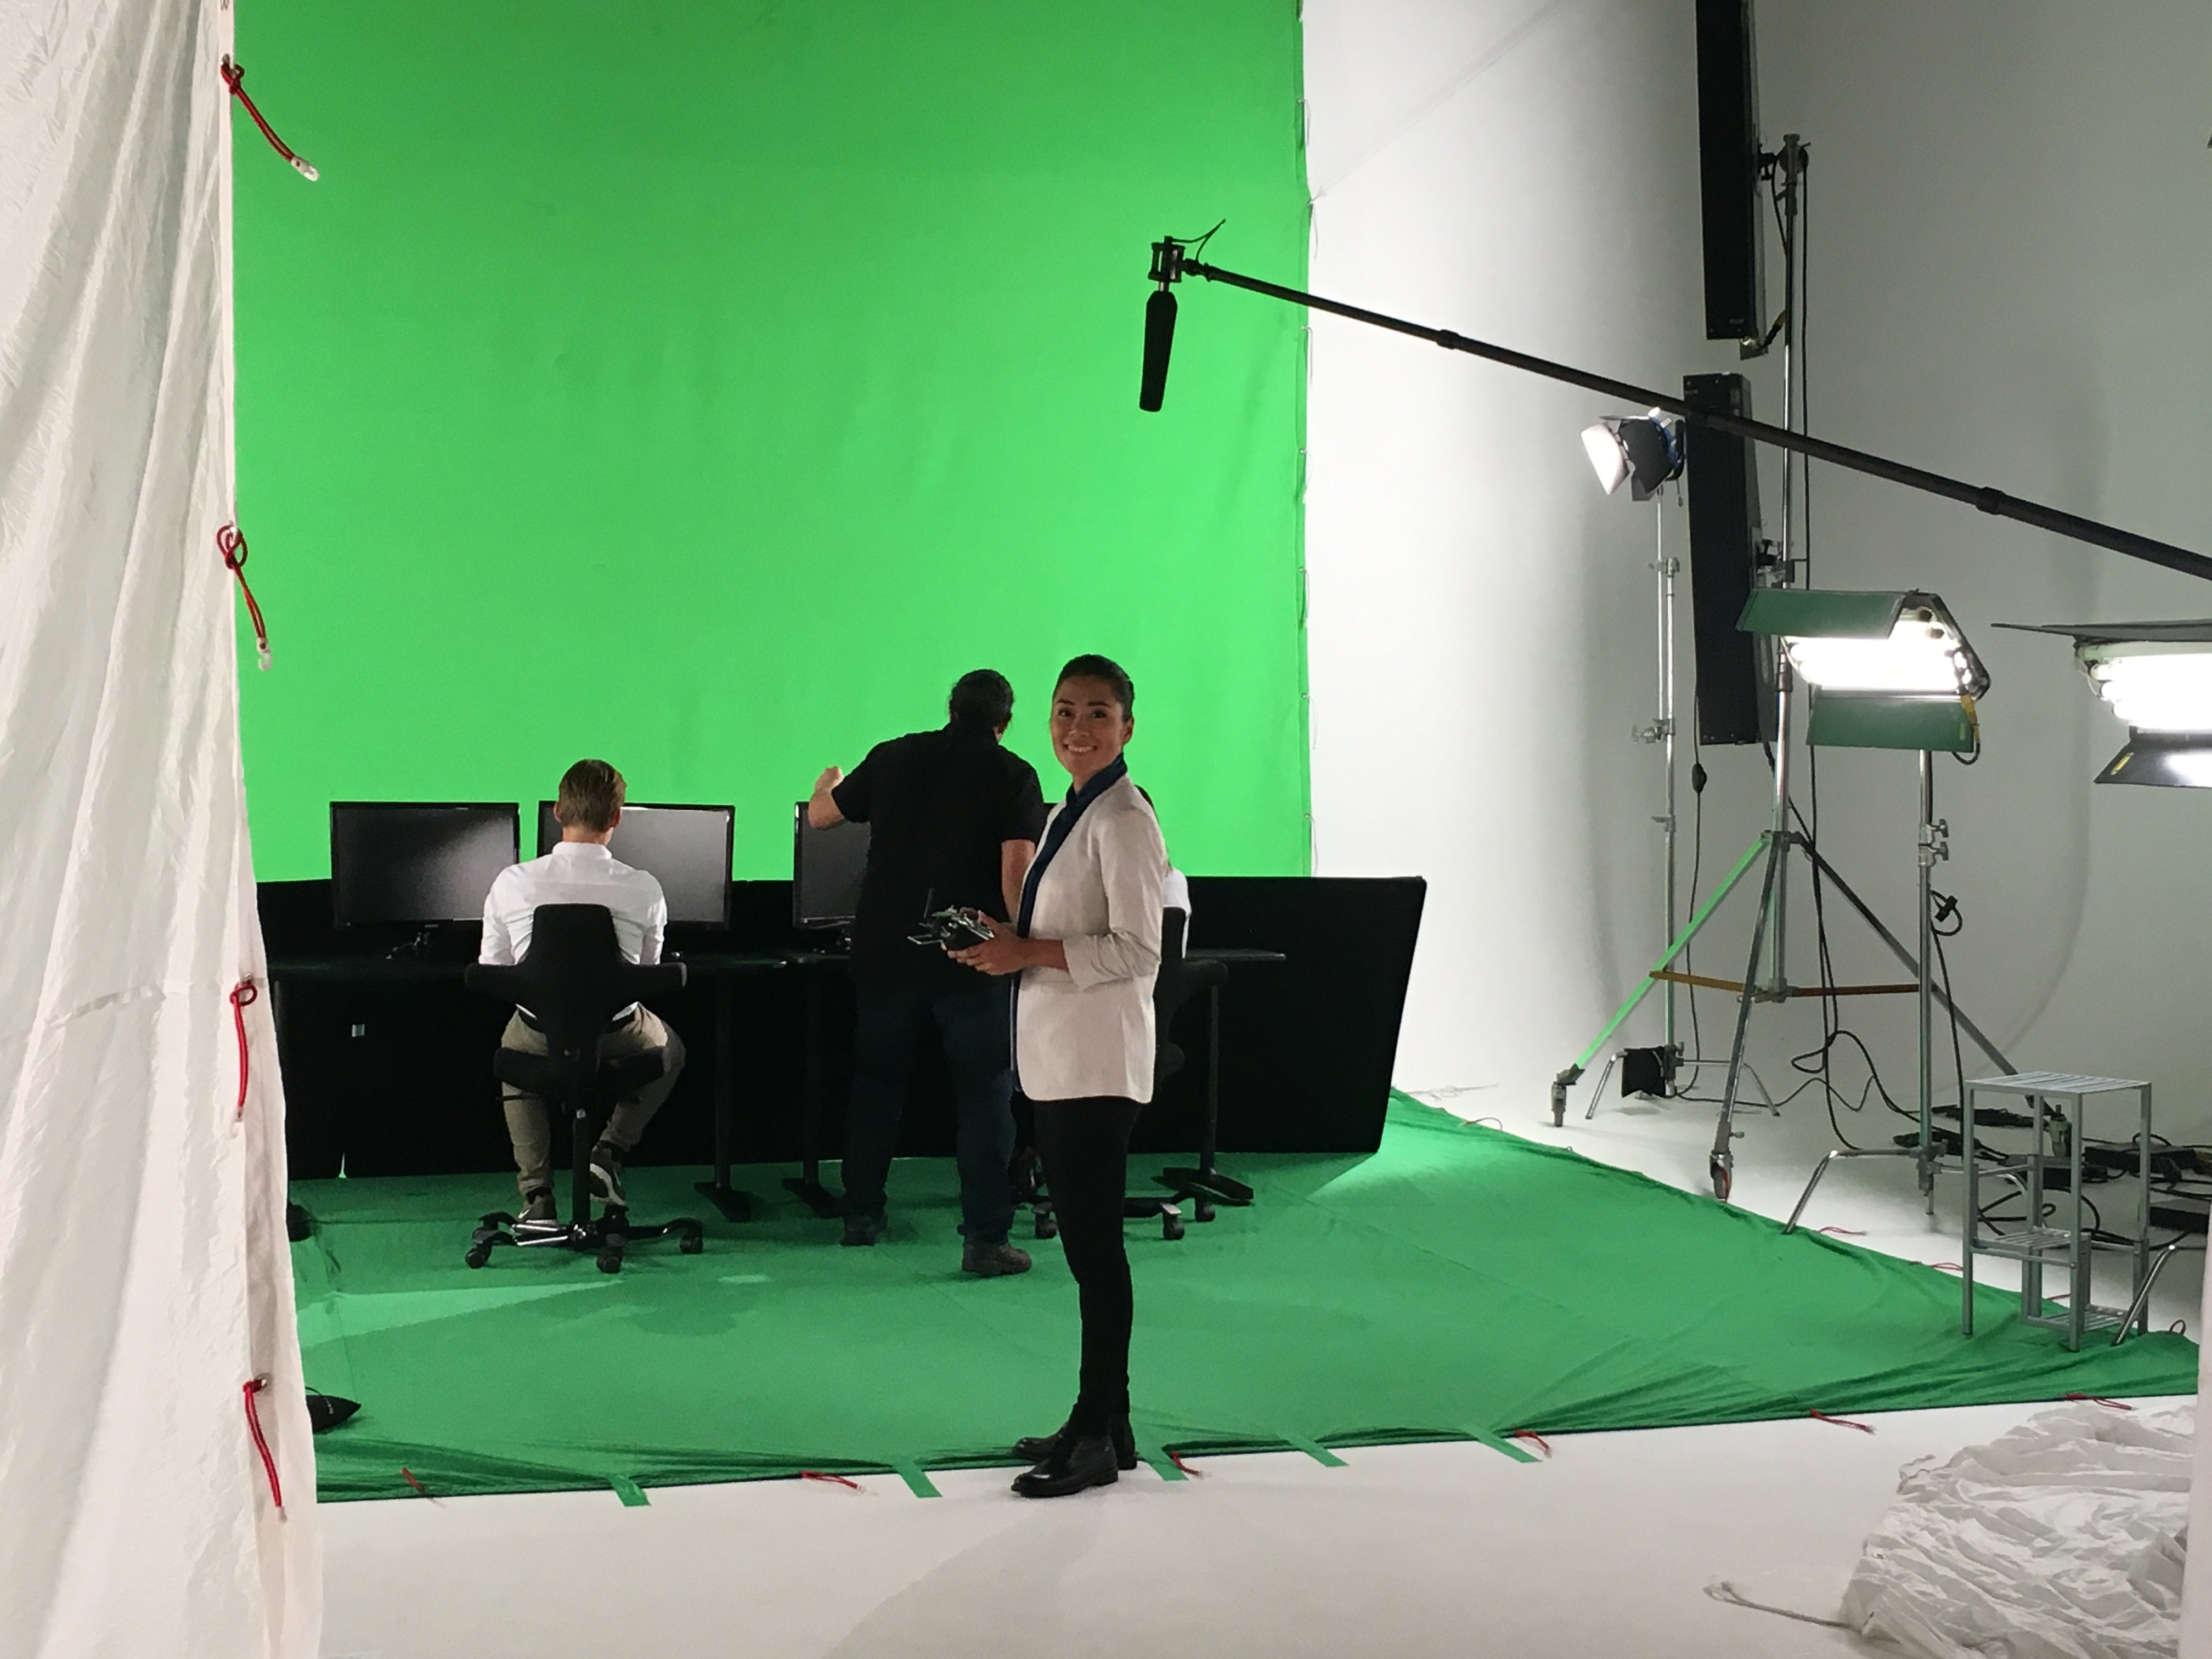 Behind the scenes: shooting on green screen